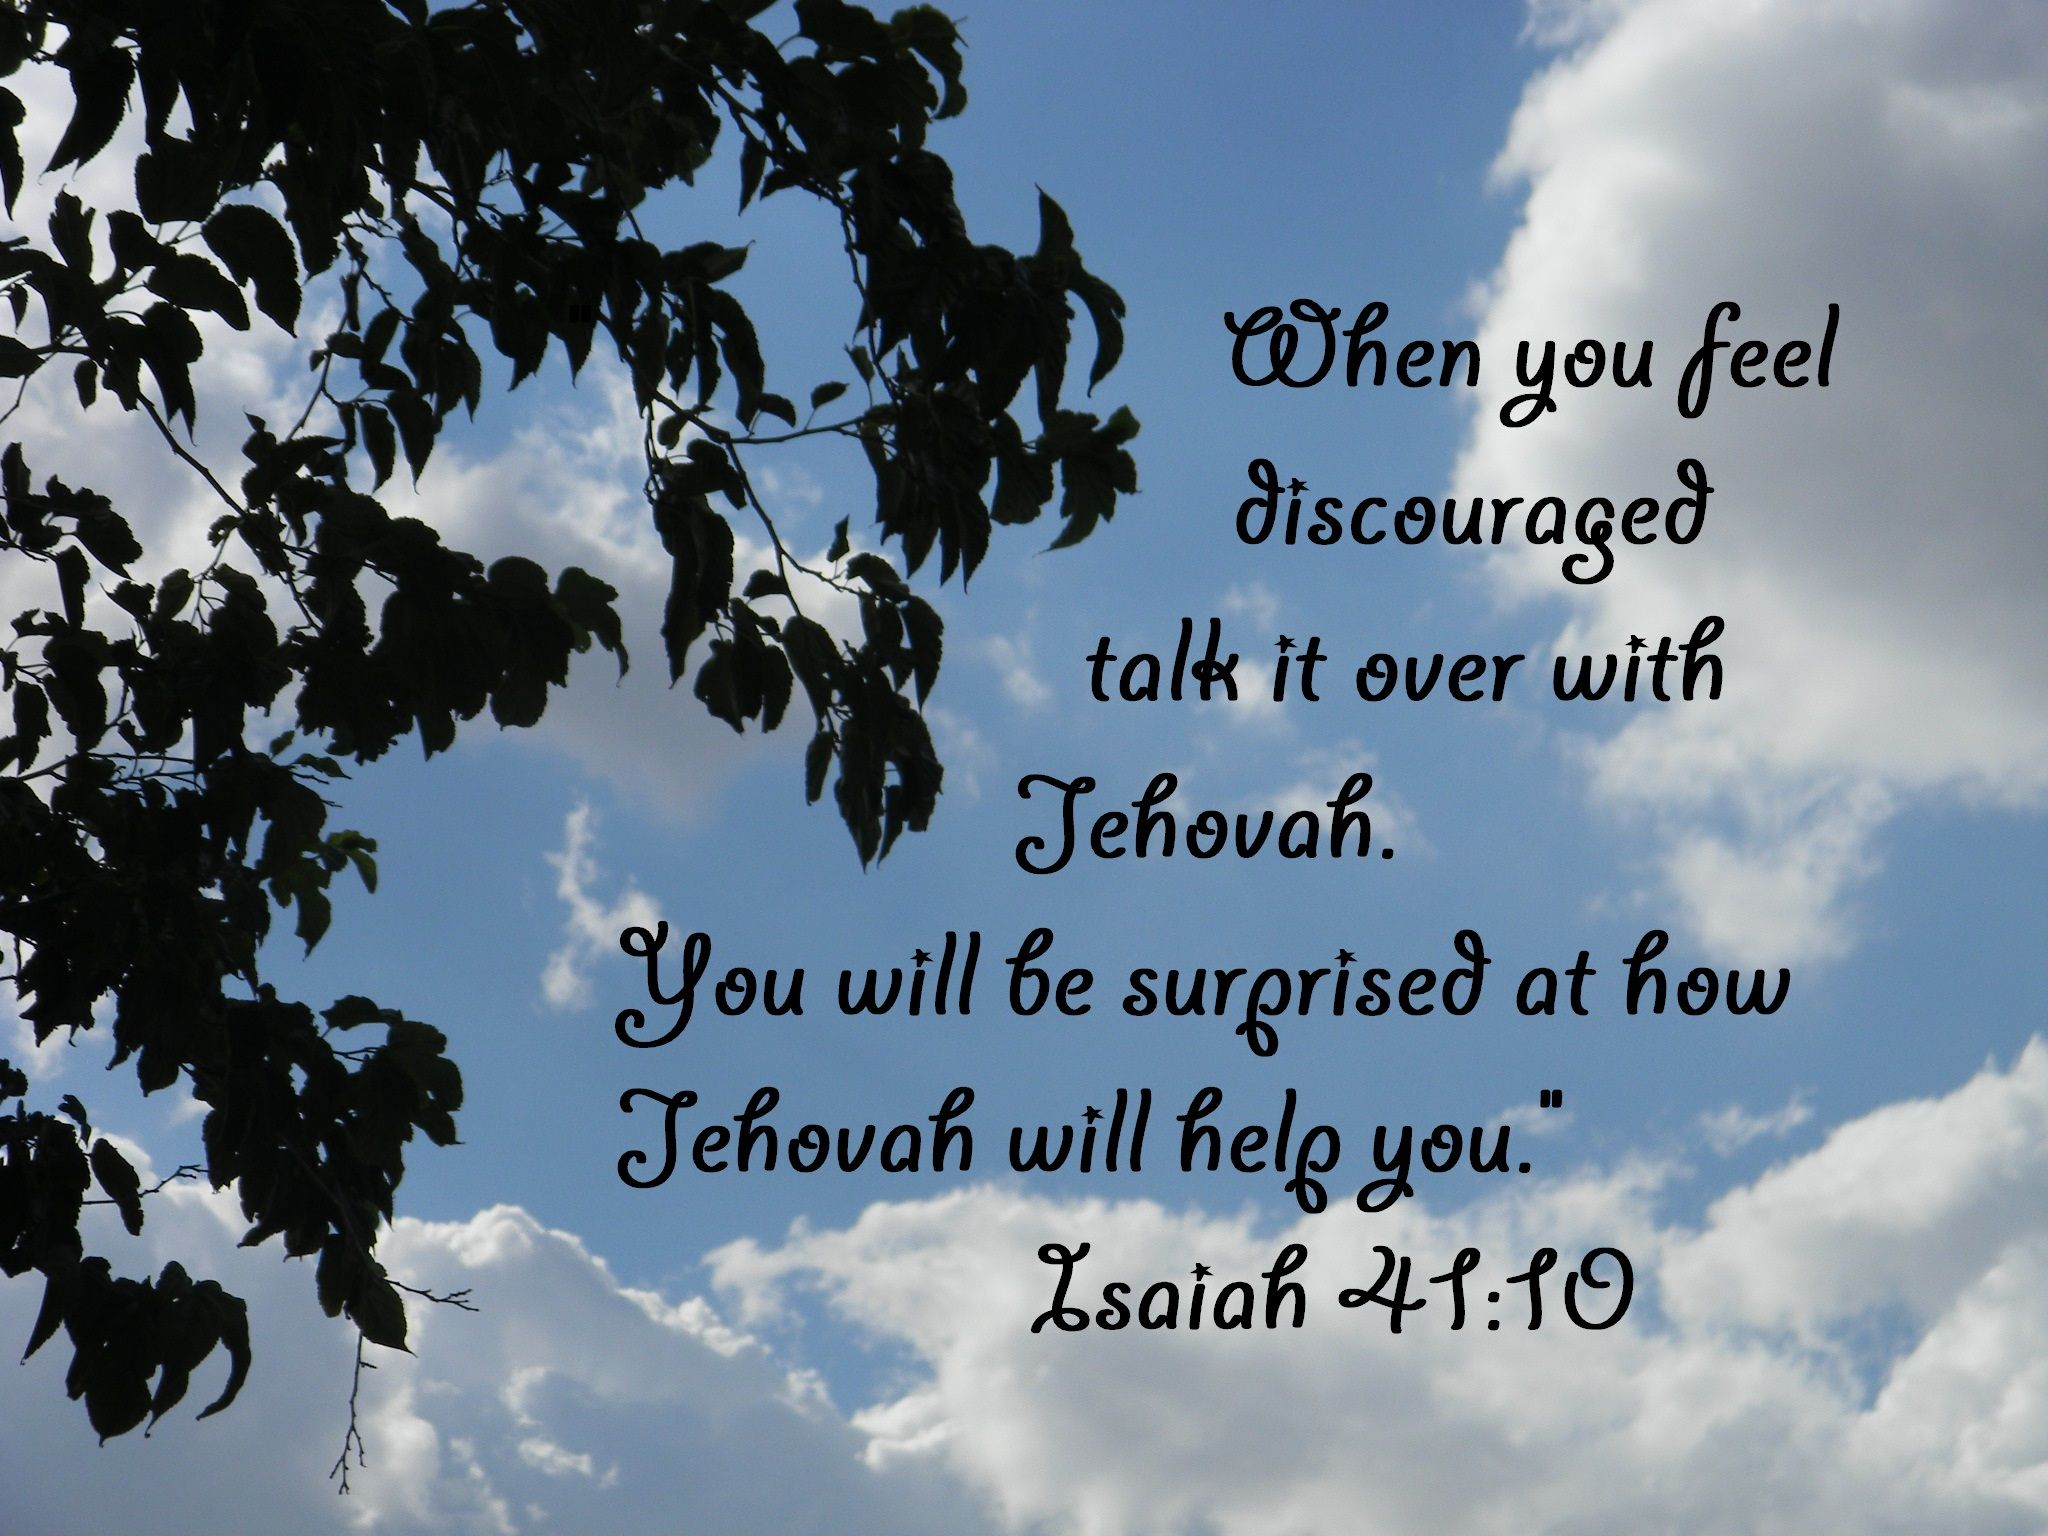 Jehovah is our helper